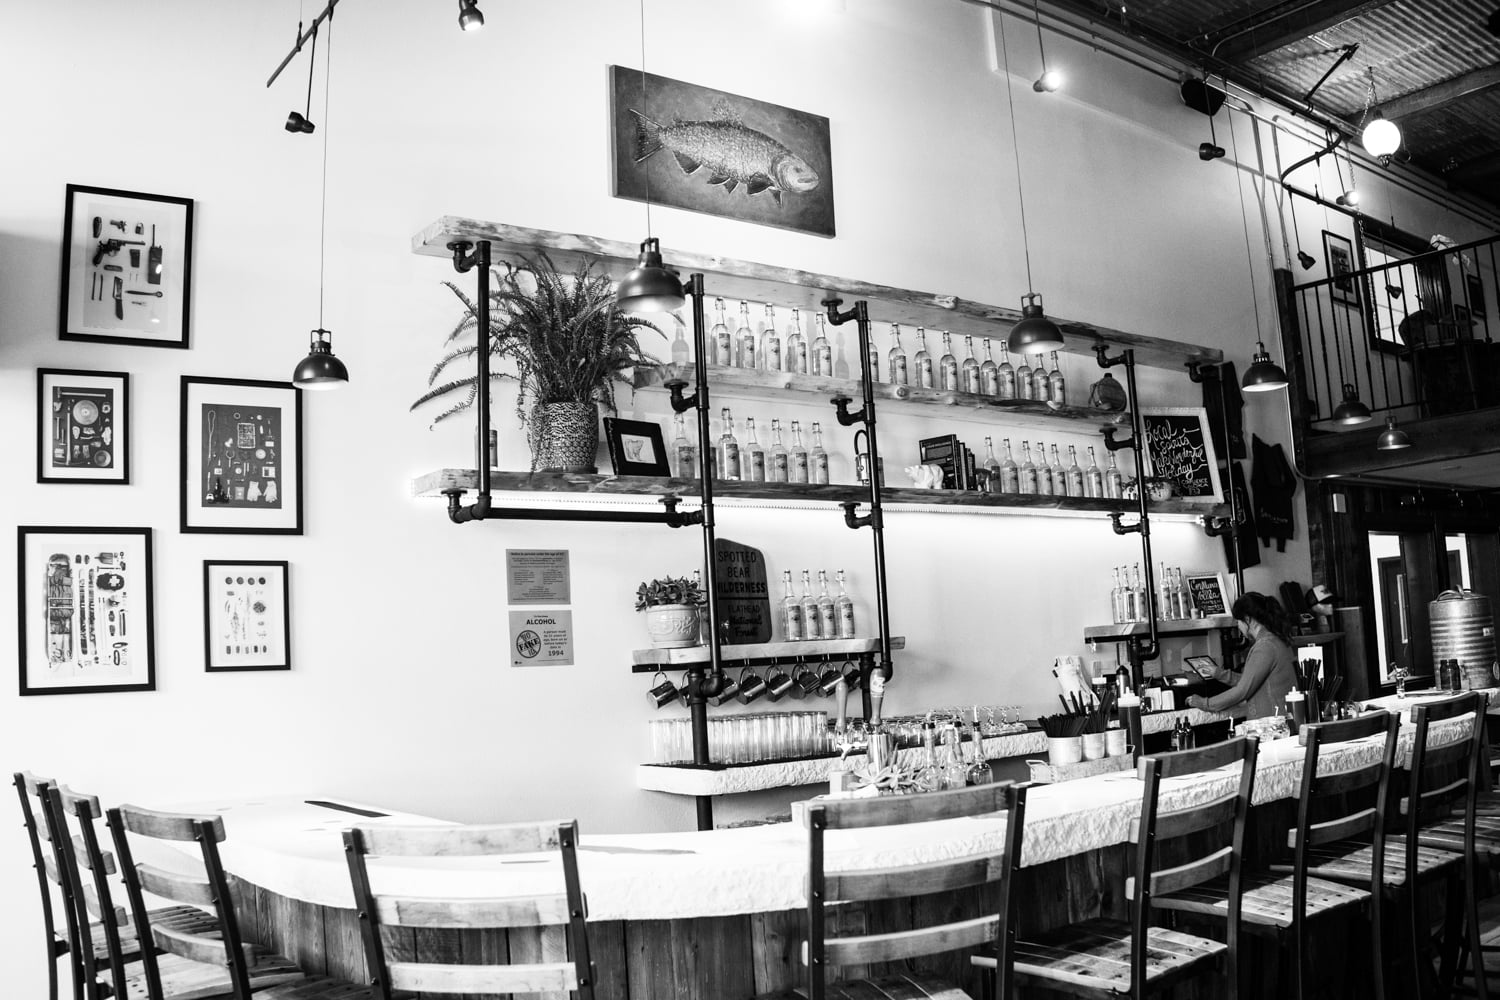 The new Spotted Bear Spirits Distillery in Whitefish, Montana. Featuring a vintage rustic wilderness decor and highlighting the art of Mandy Mohler, Field Guide Designs